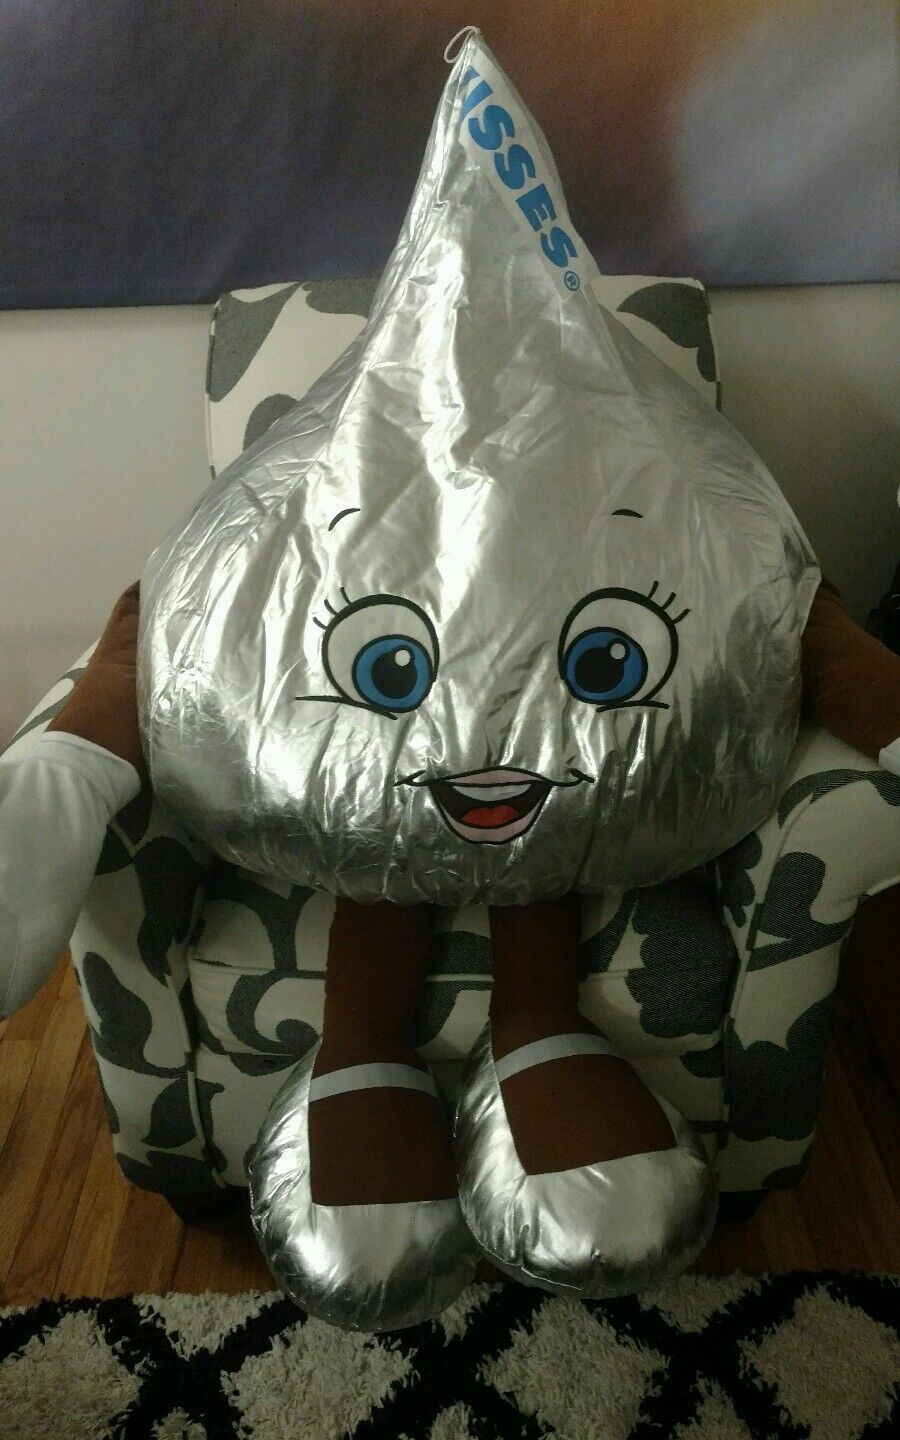 4ft HUGE HERSHEY KISS GIRL PLUSH STUFFED ANIMAL DOLL PARK GIANT BIG